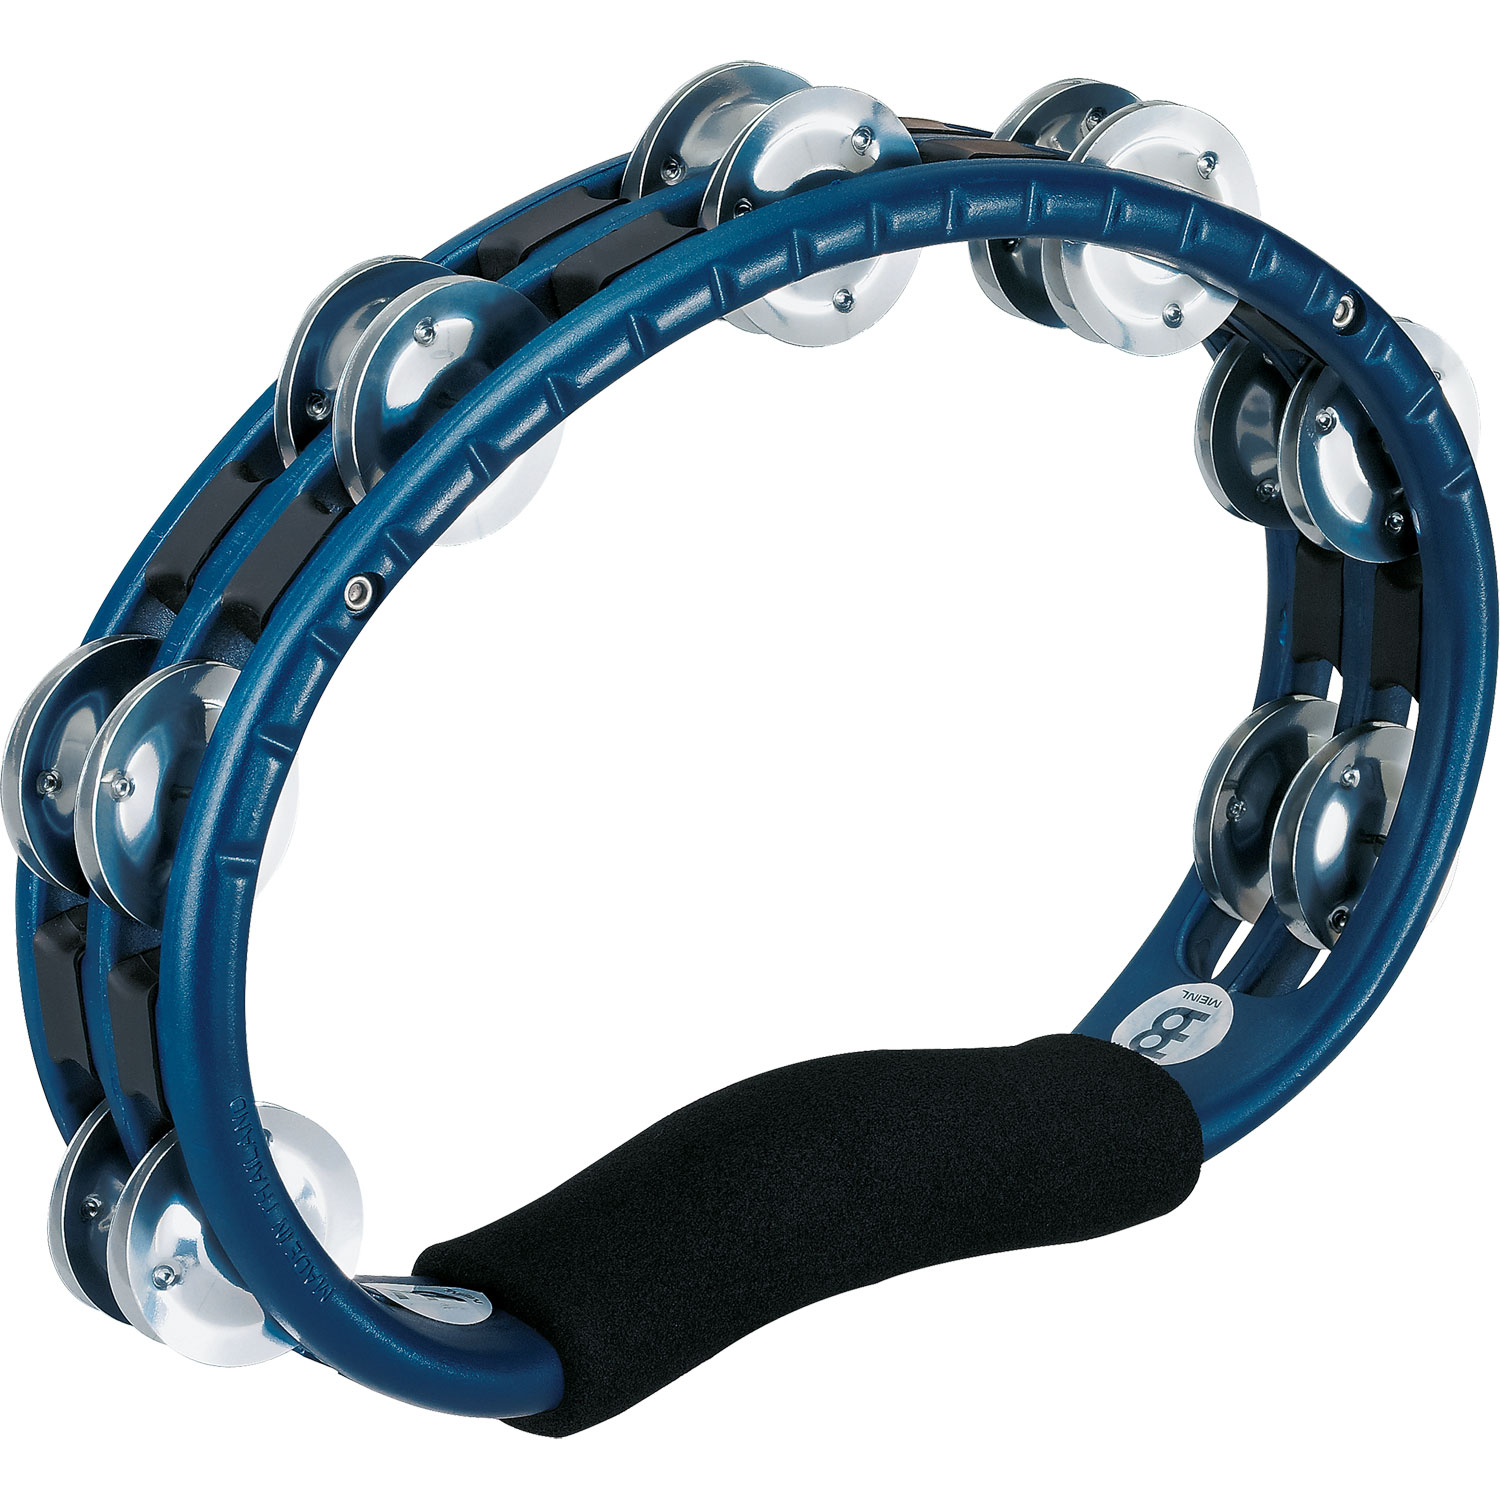 Meinl Hand Held ABS Tambourine in Blue with Aluminum Jingles